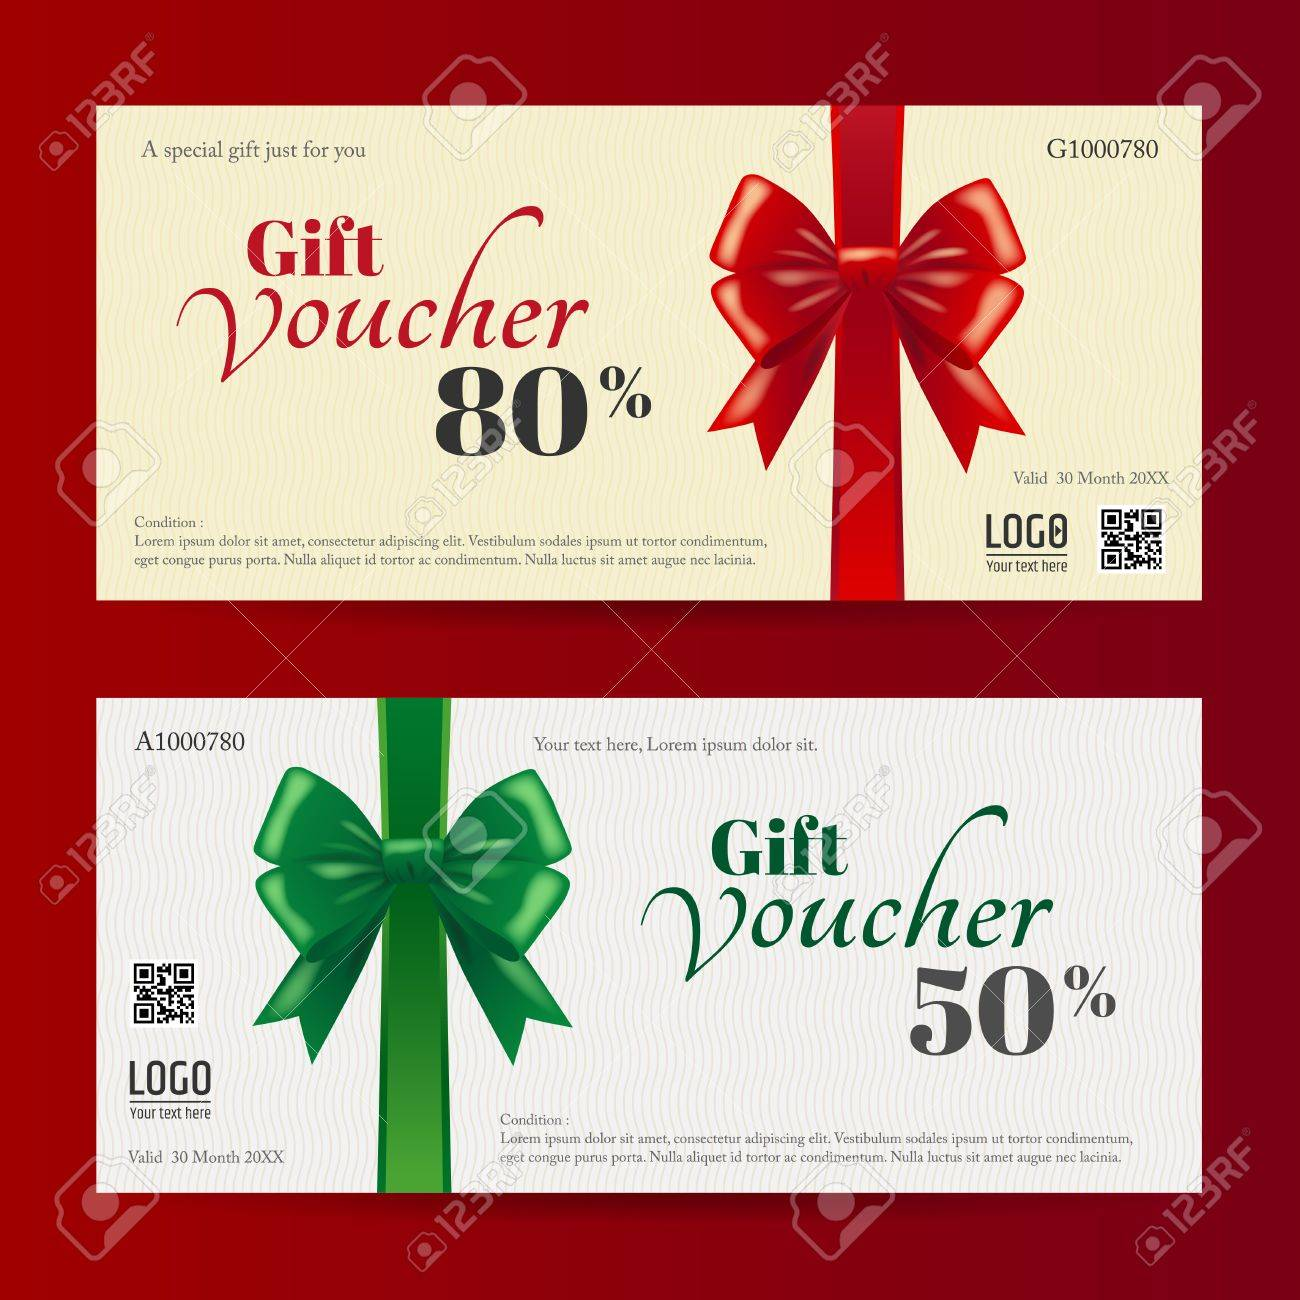 Elegant Christmas Gift Card Or Gift Voucher Template With Shiny ...